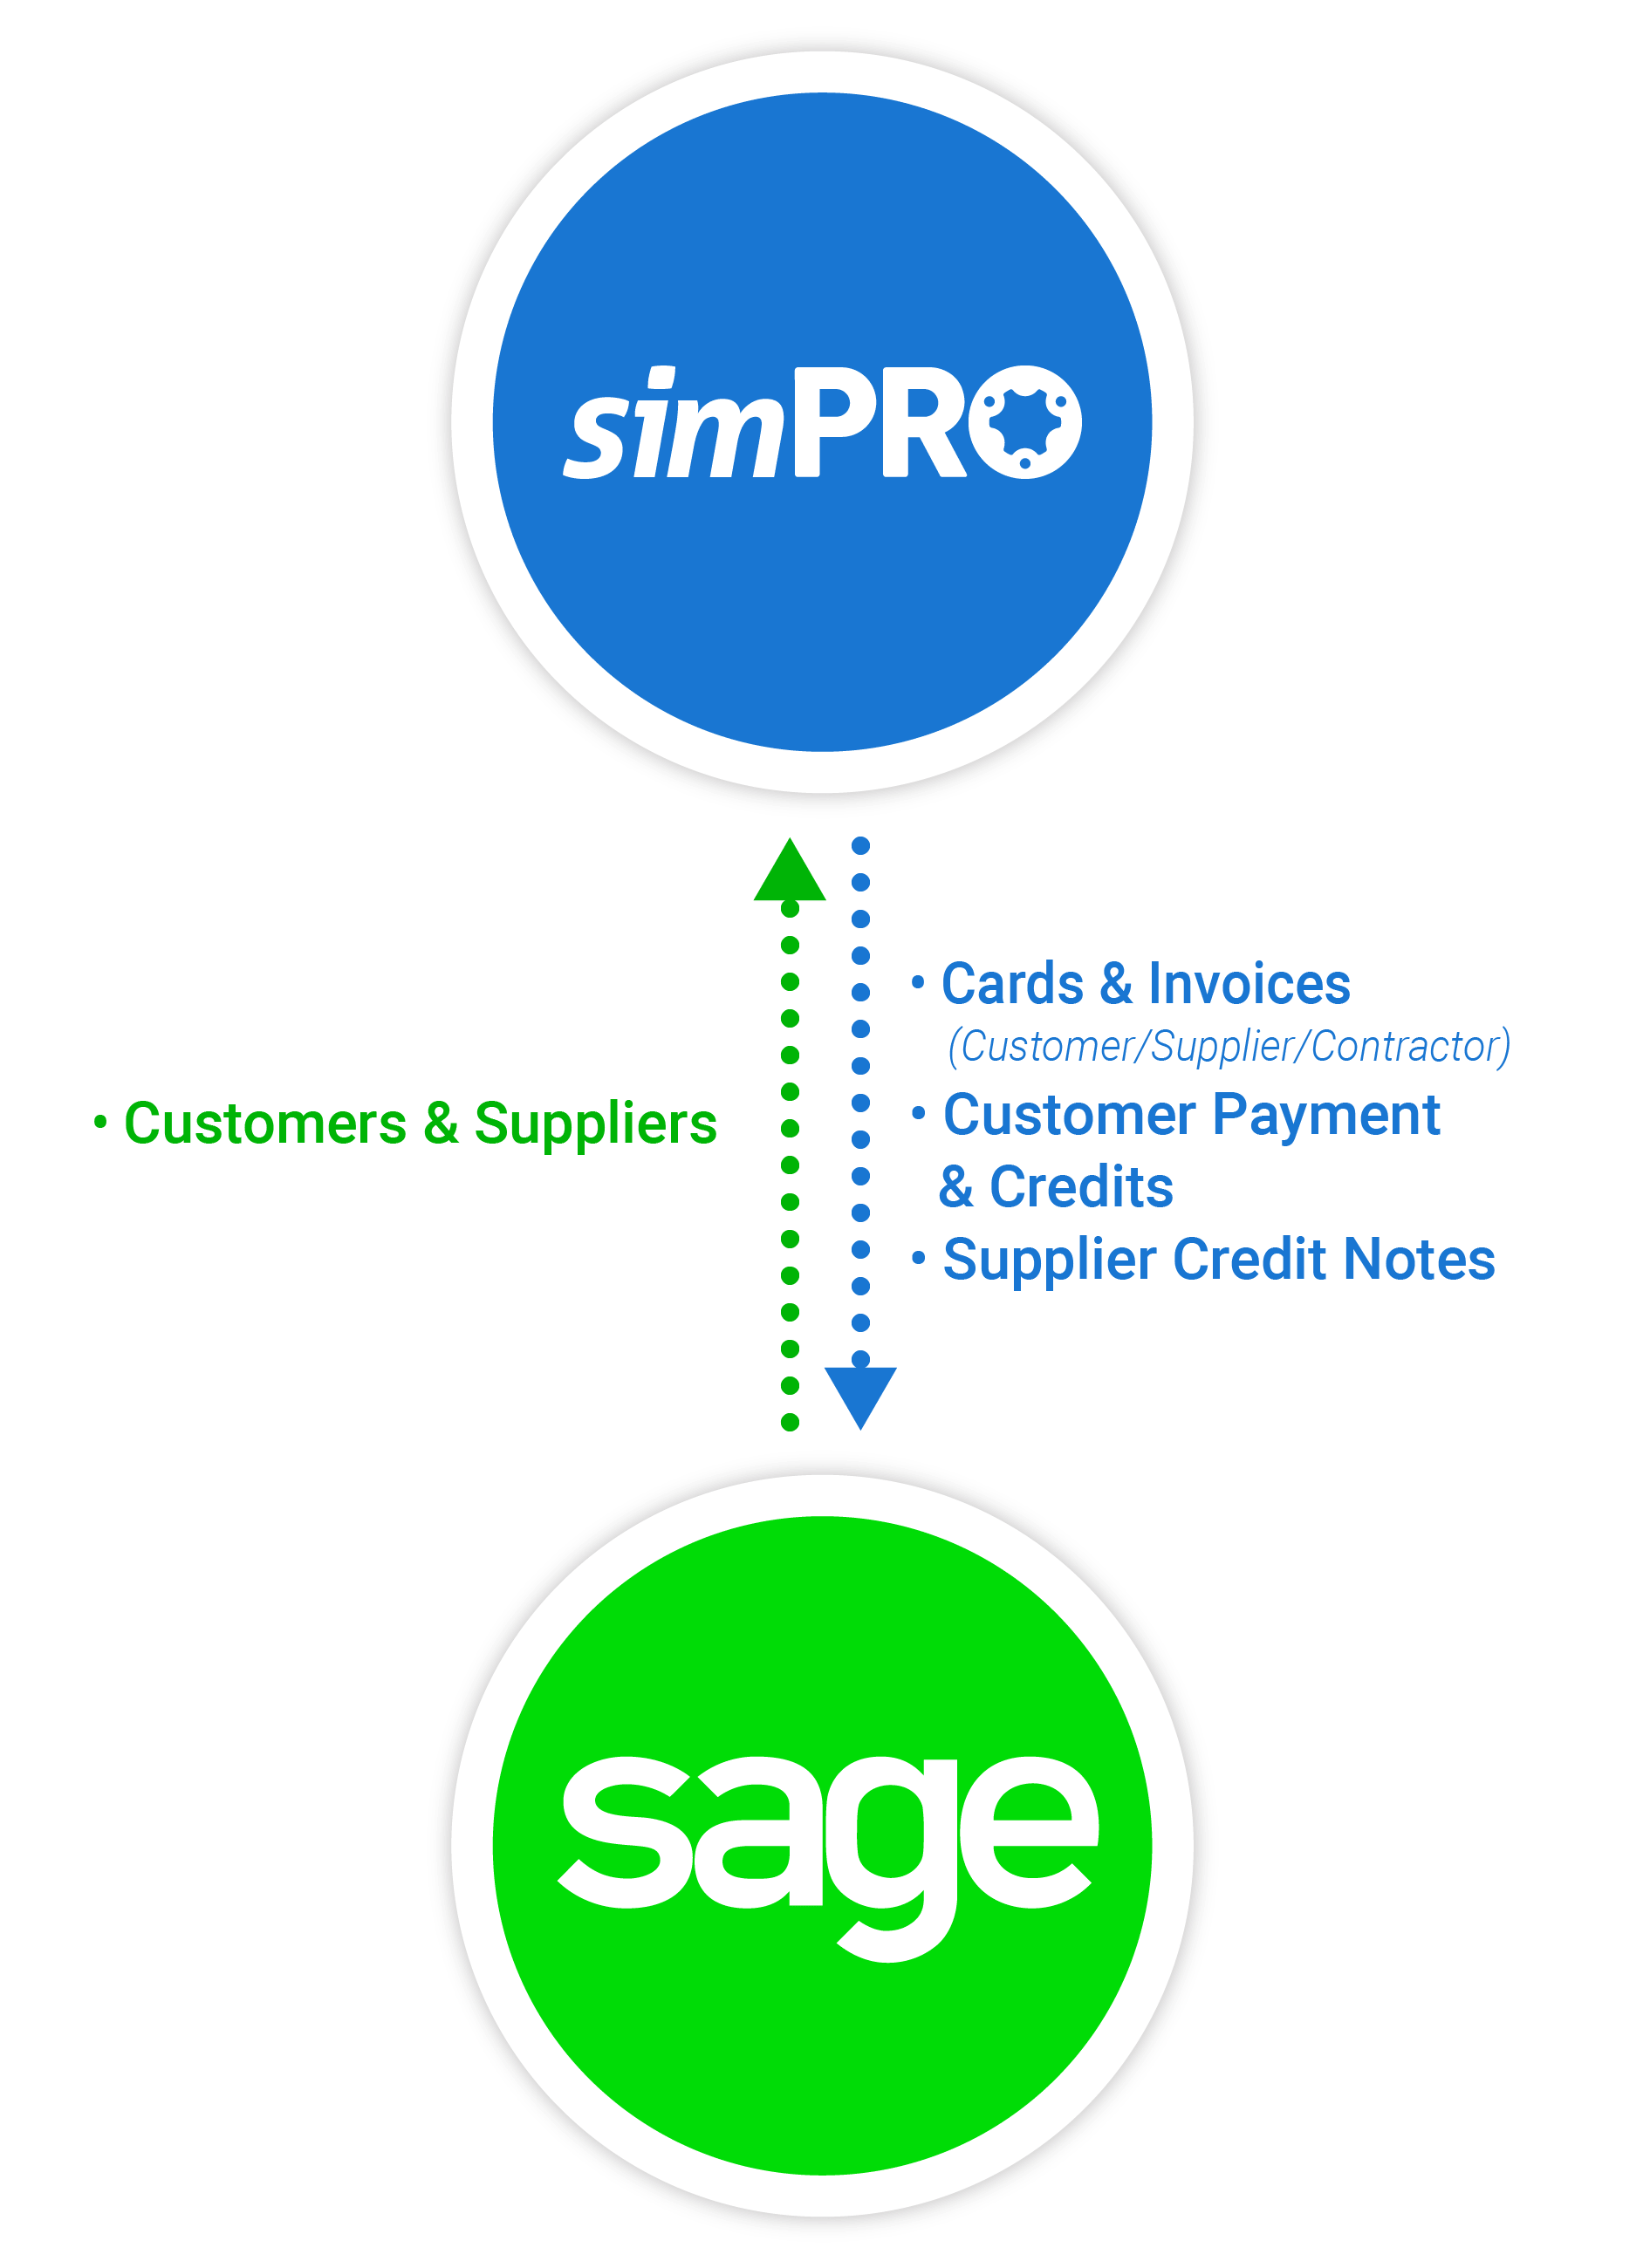 simPRO and Sage functionality composition mobile